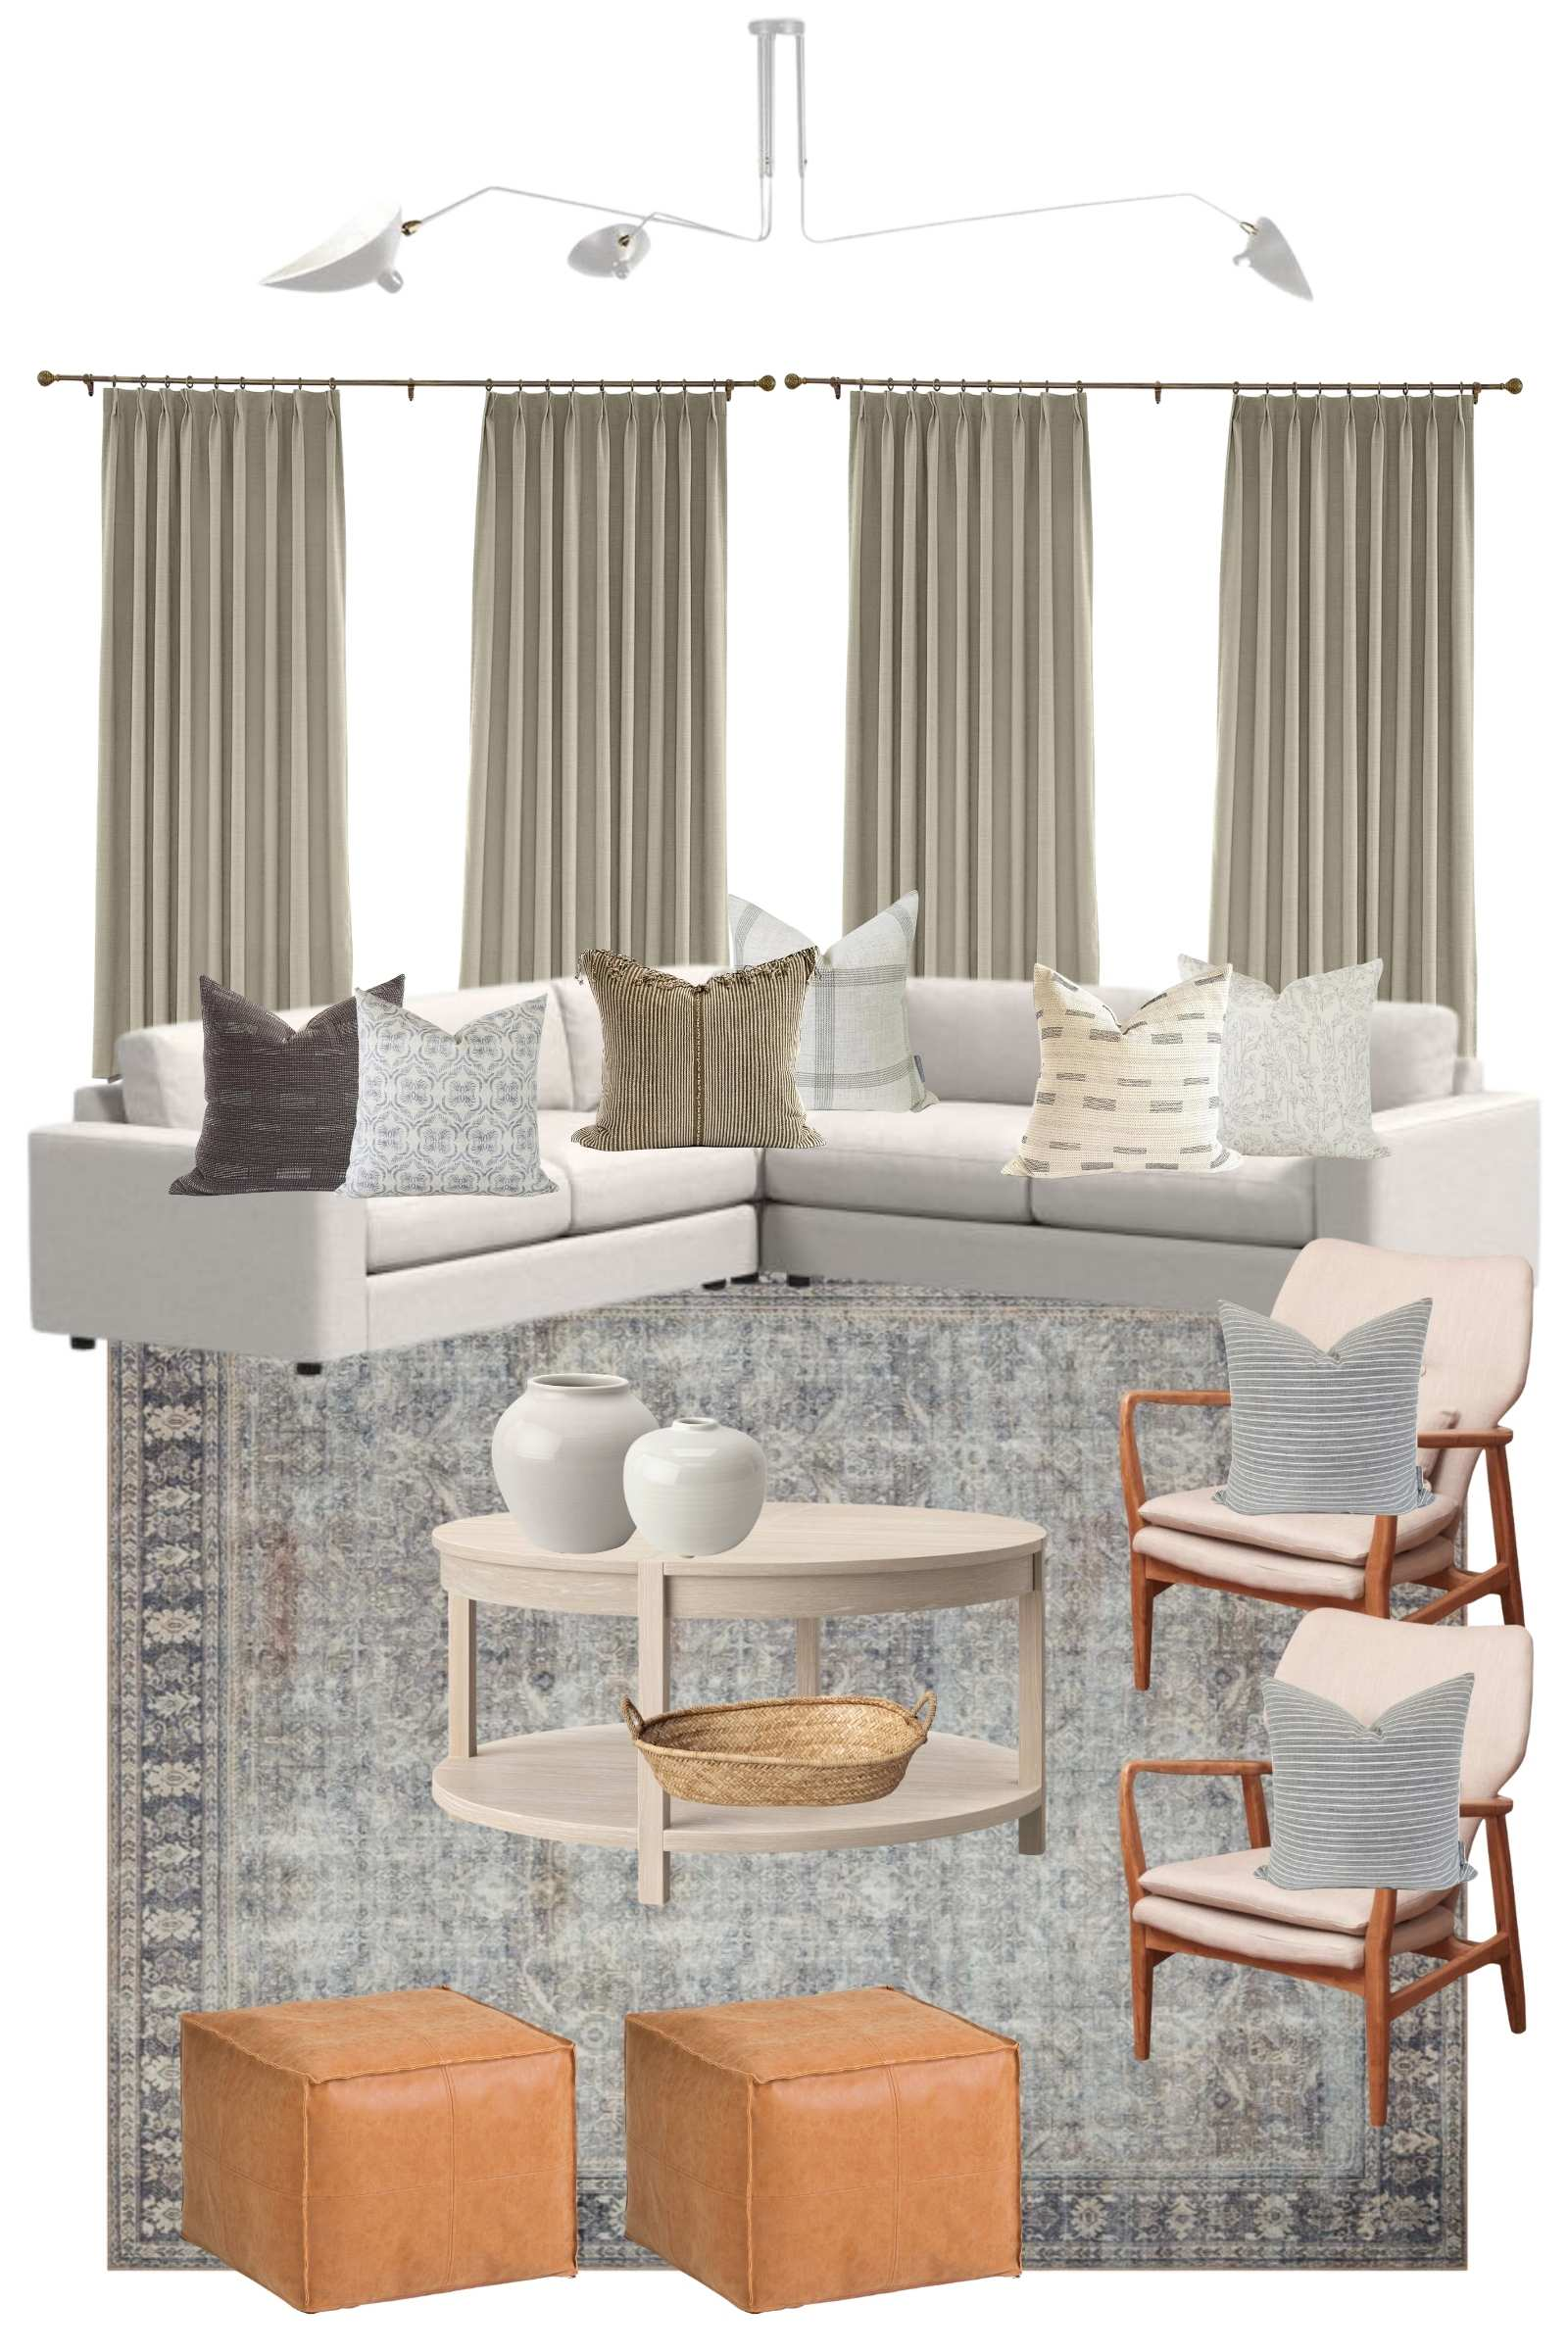 Cozy Modern Living Room Design Plan | wood accent chair, artificial olive tree, La Jolla basket, linen pinch pleat drapes, round wood coffee table, leather pouf